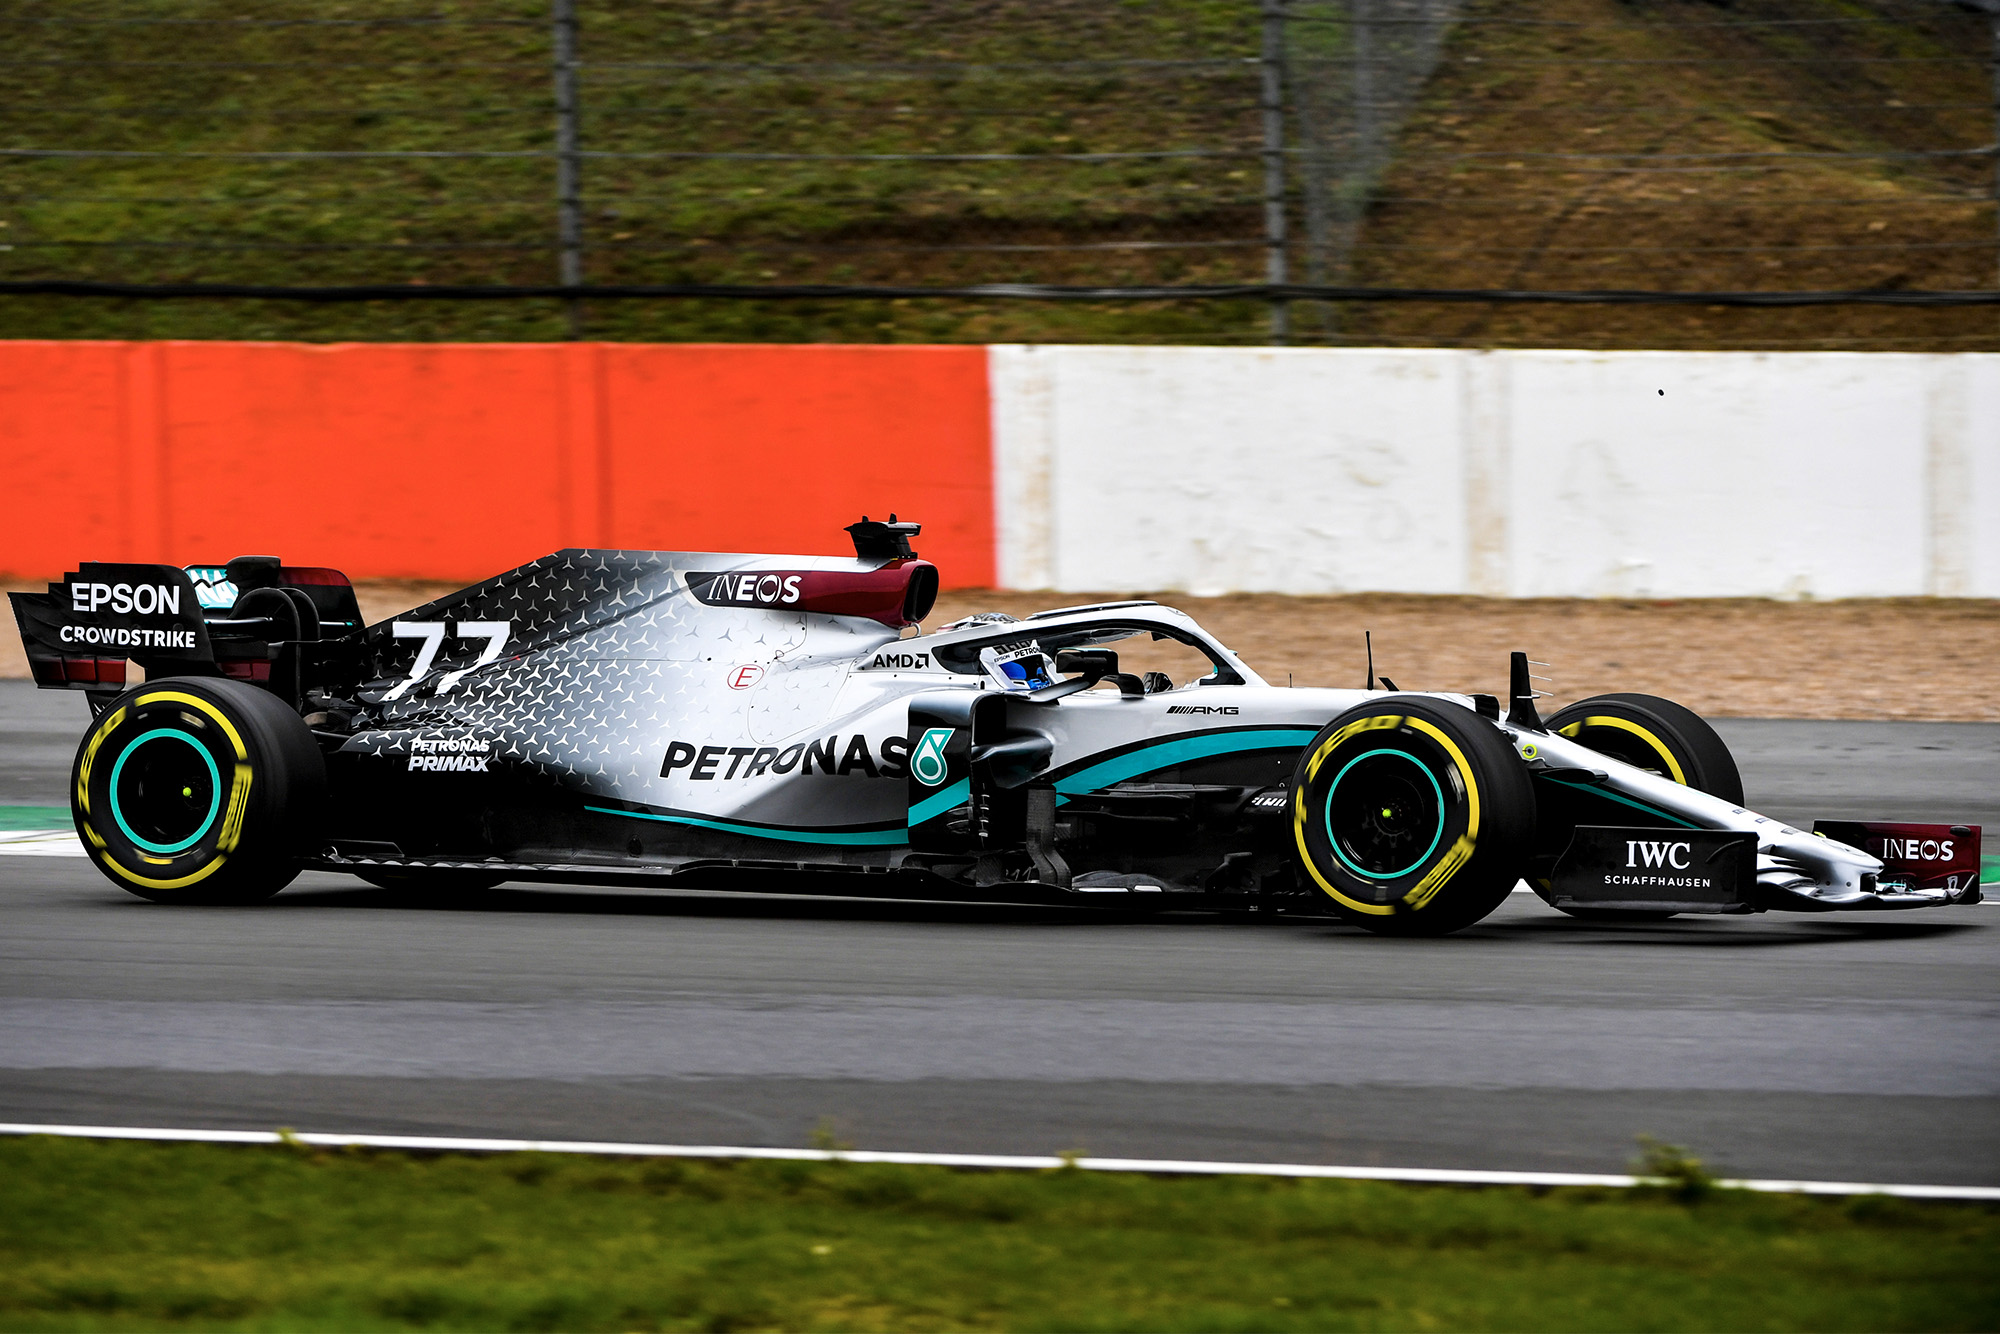 Mercedes reveals 2020 W11 car ahead of Silverstone shakedown